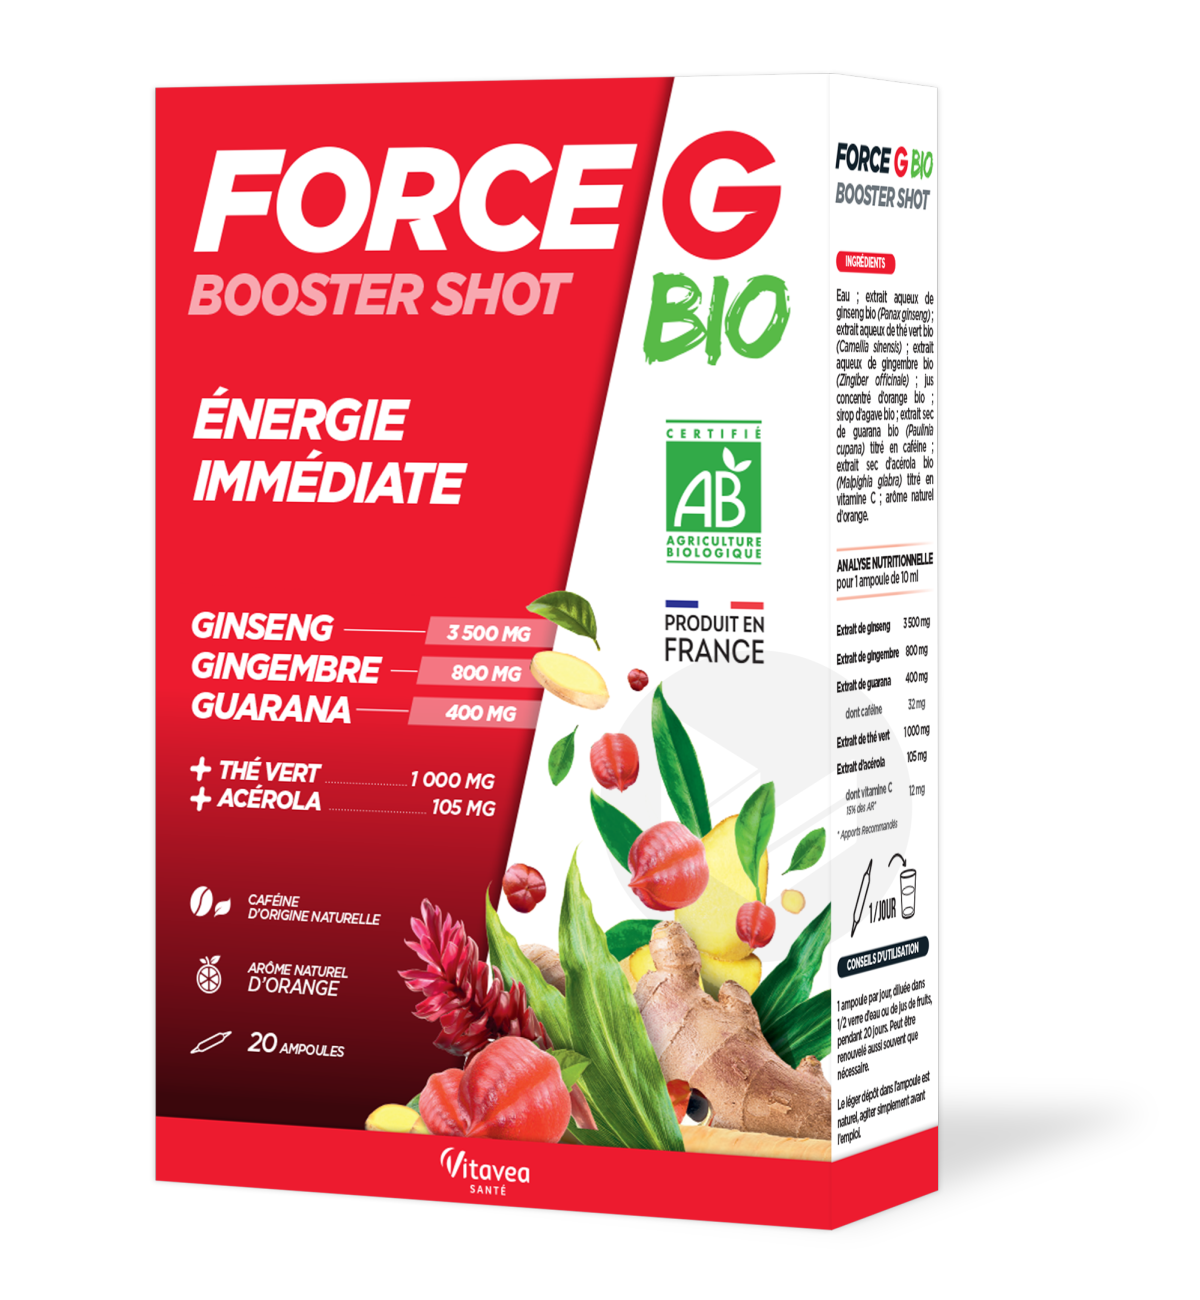 Force G Booster Shot Bio 20 Ampoules